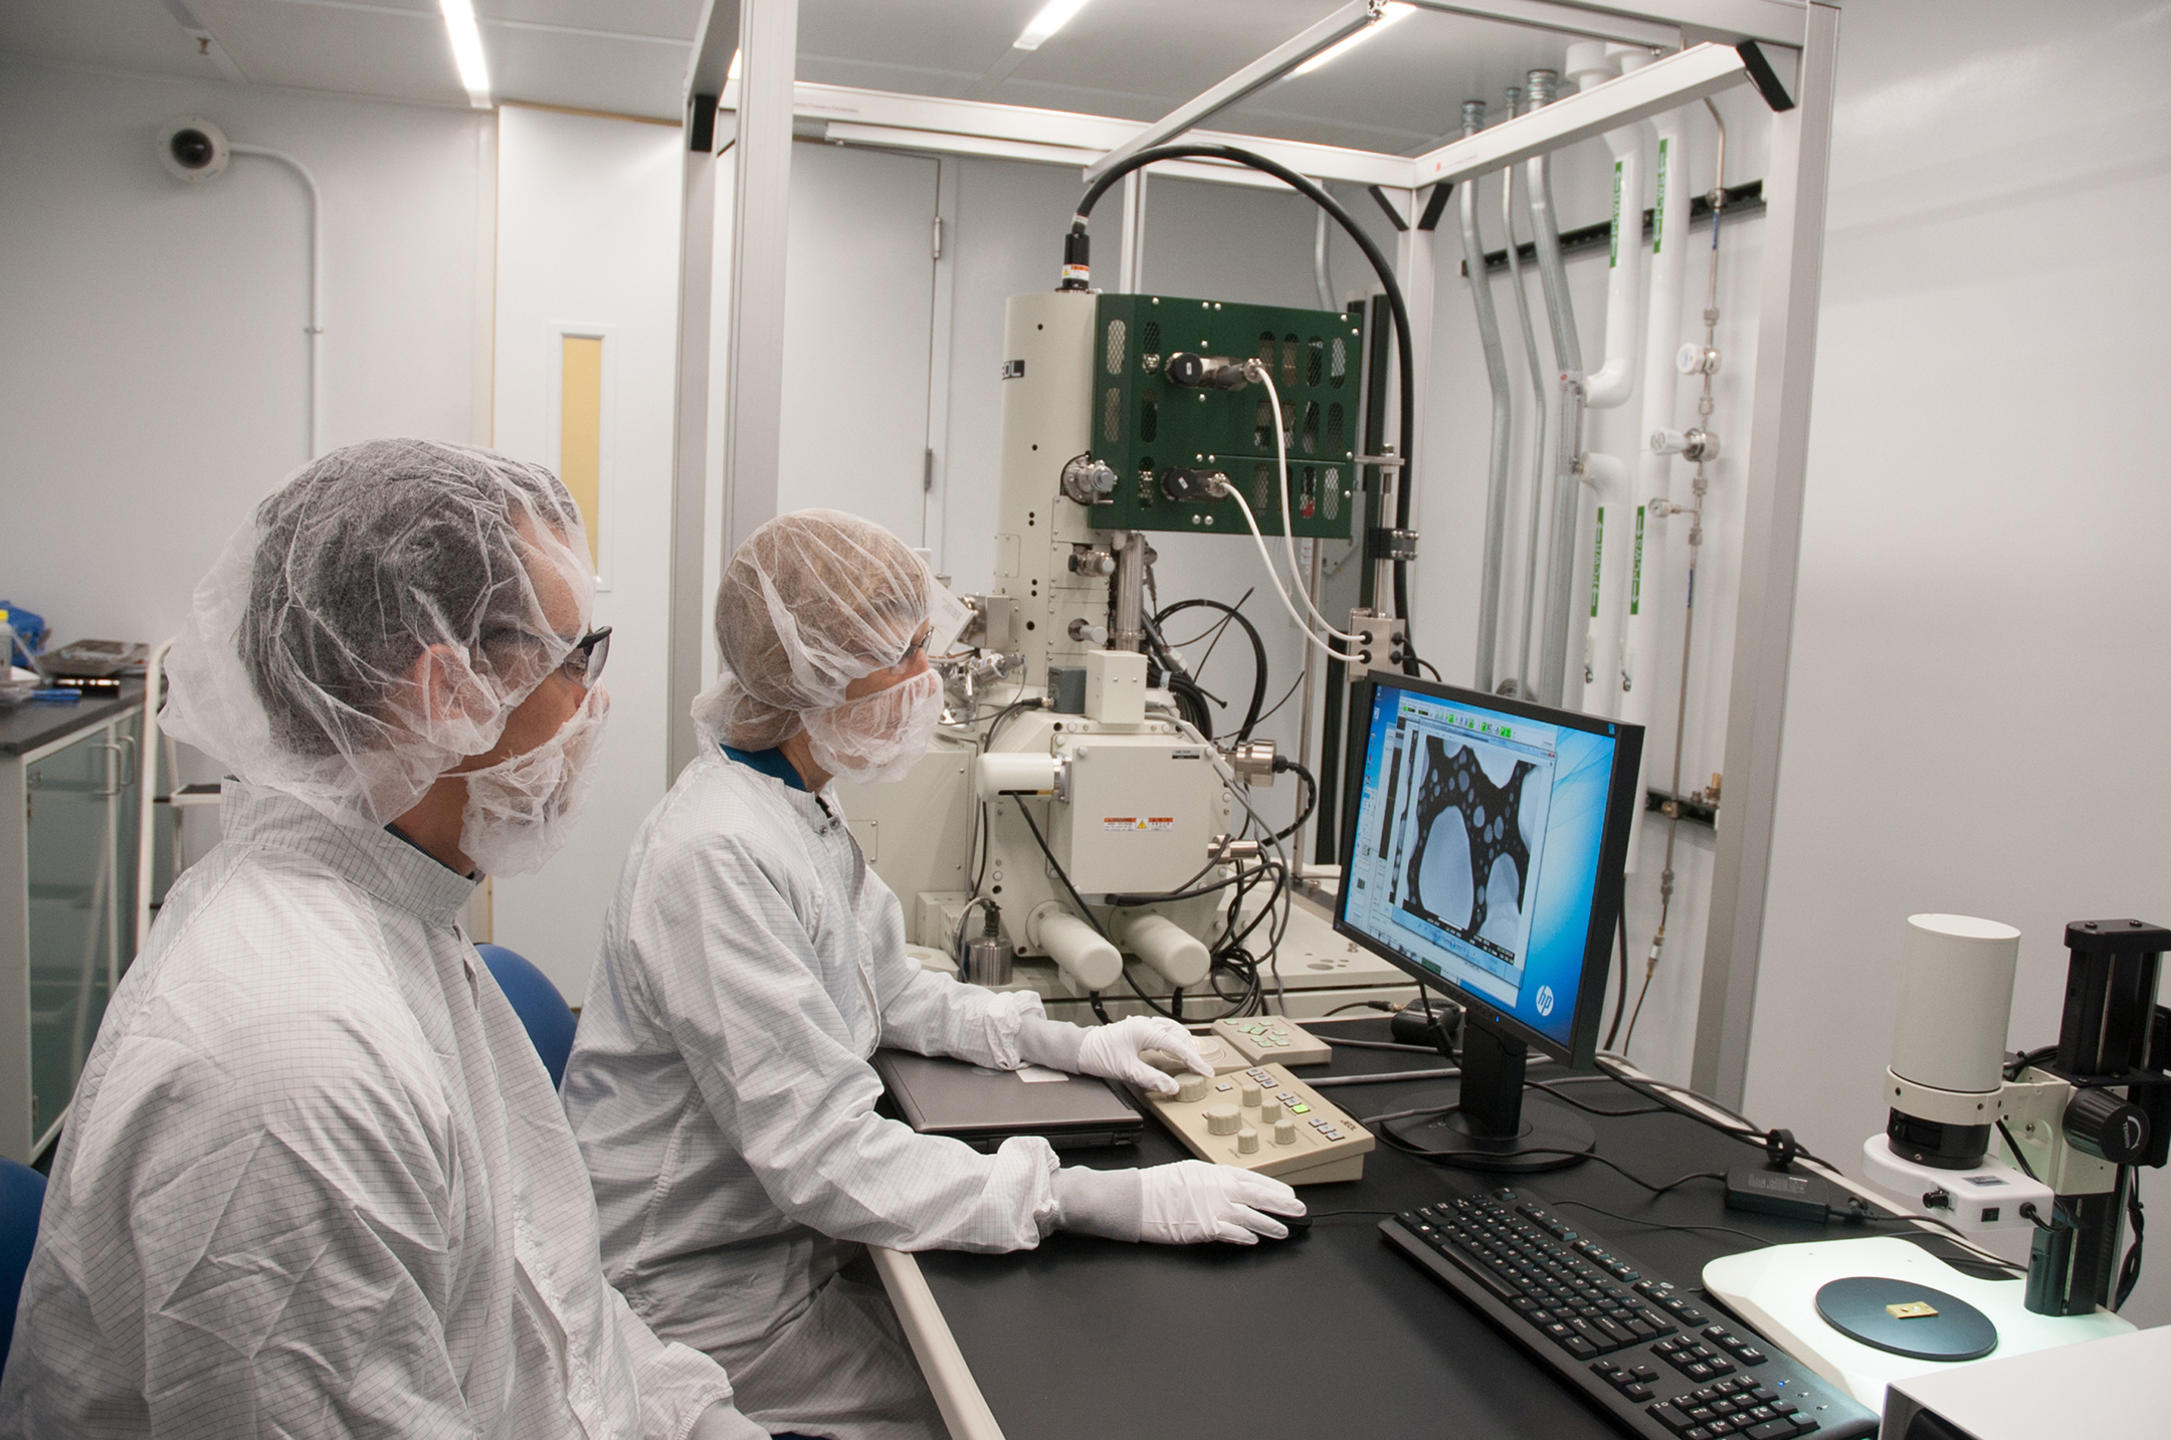 Two seated people in bunny suits look at a bluish computer image